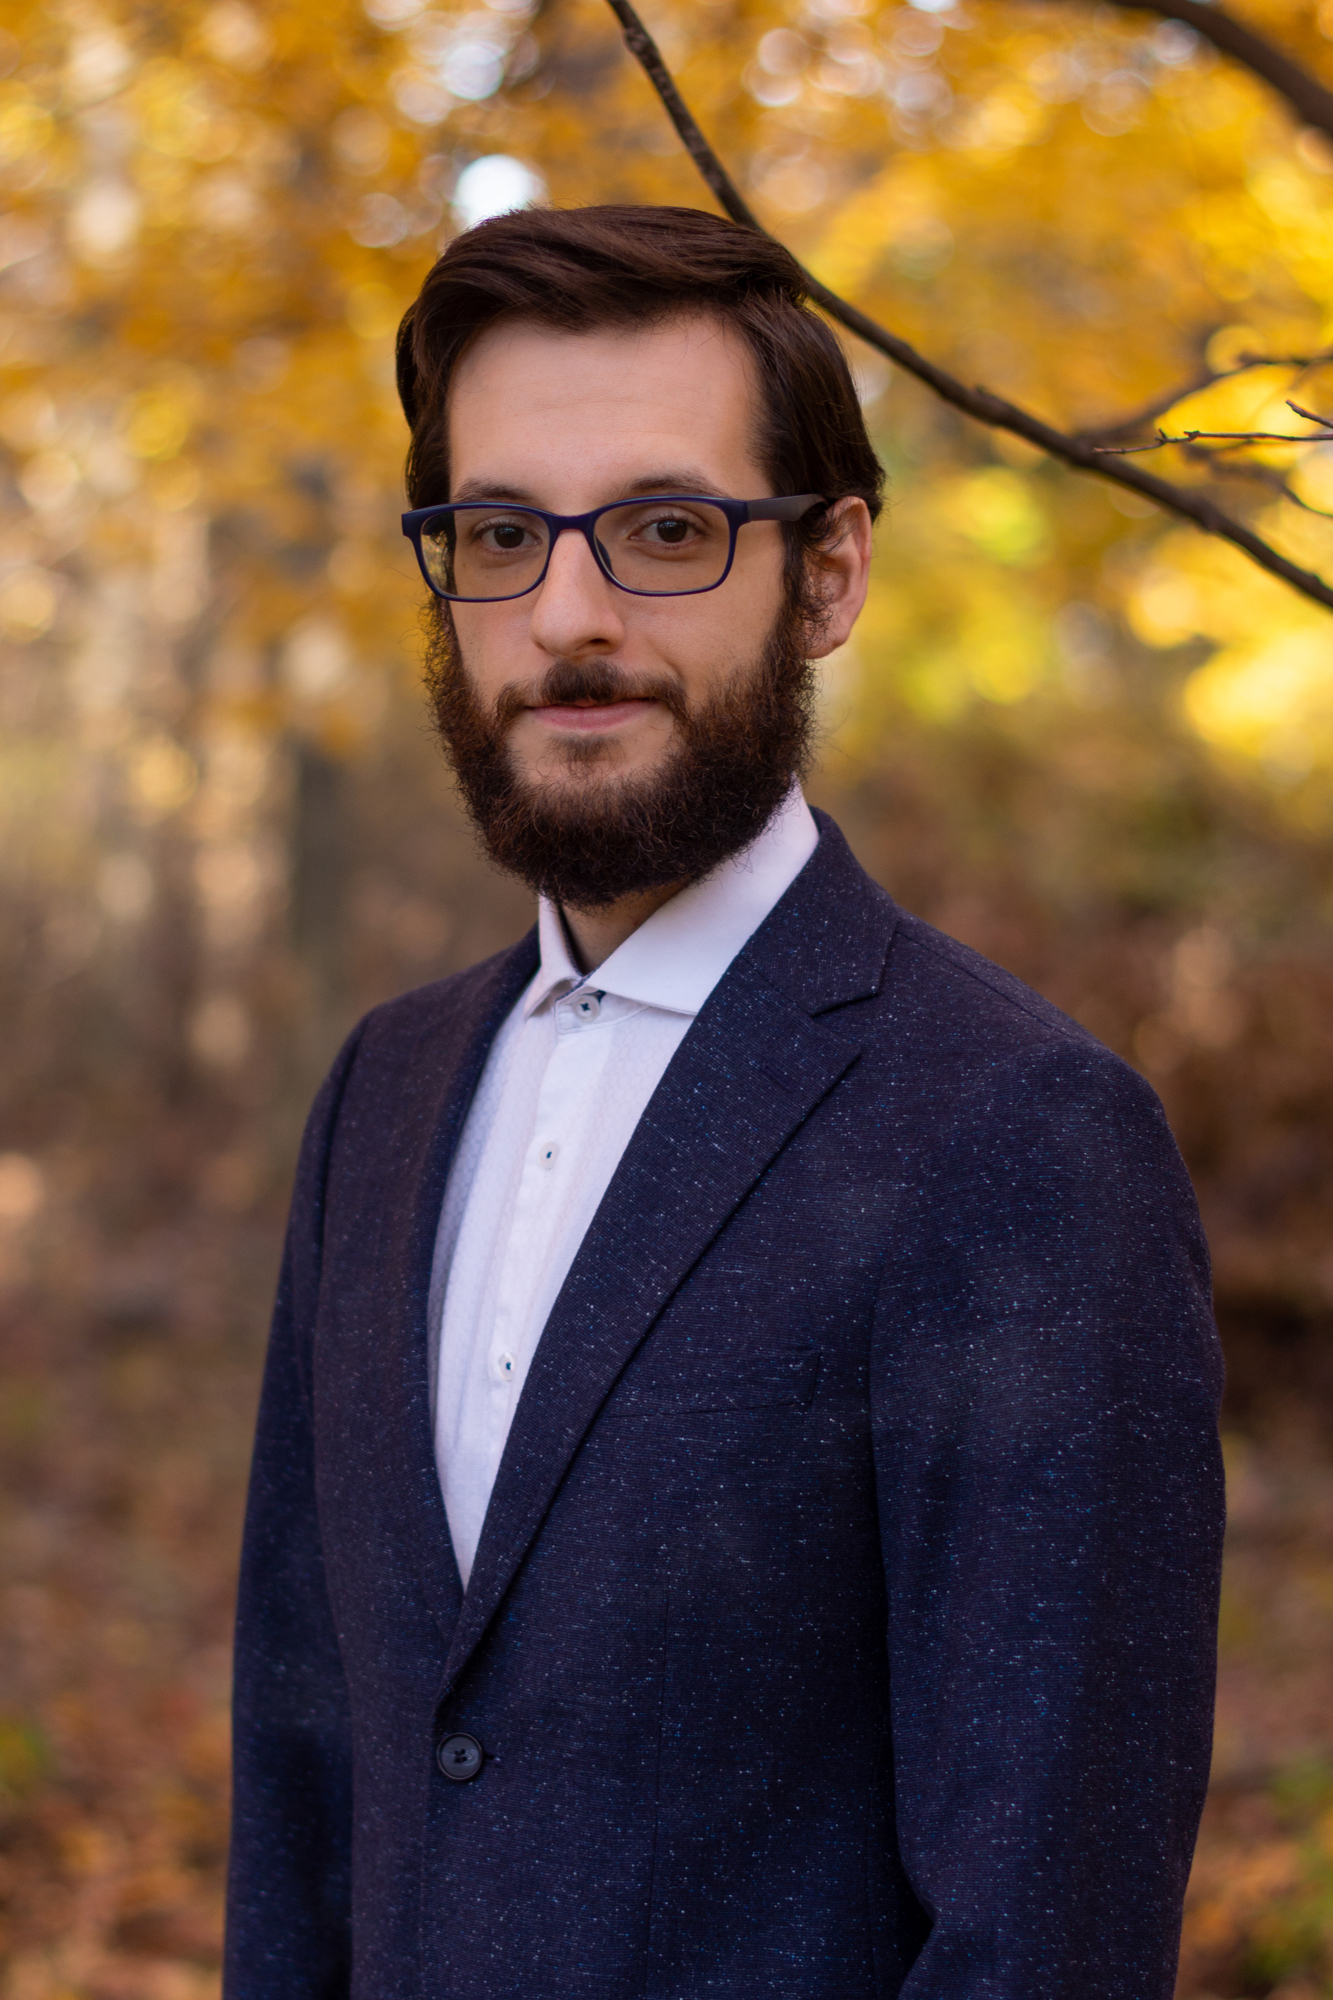 Benjamin is wearing a dark blue blazer over a white button up shirt. He has a full beard dark brown hair and glasses. He is standing outside in front of a golden fall scene.